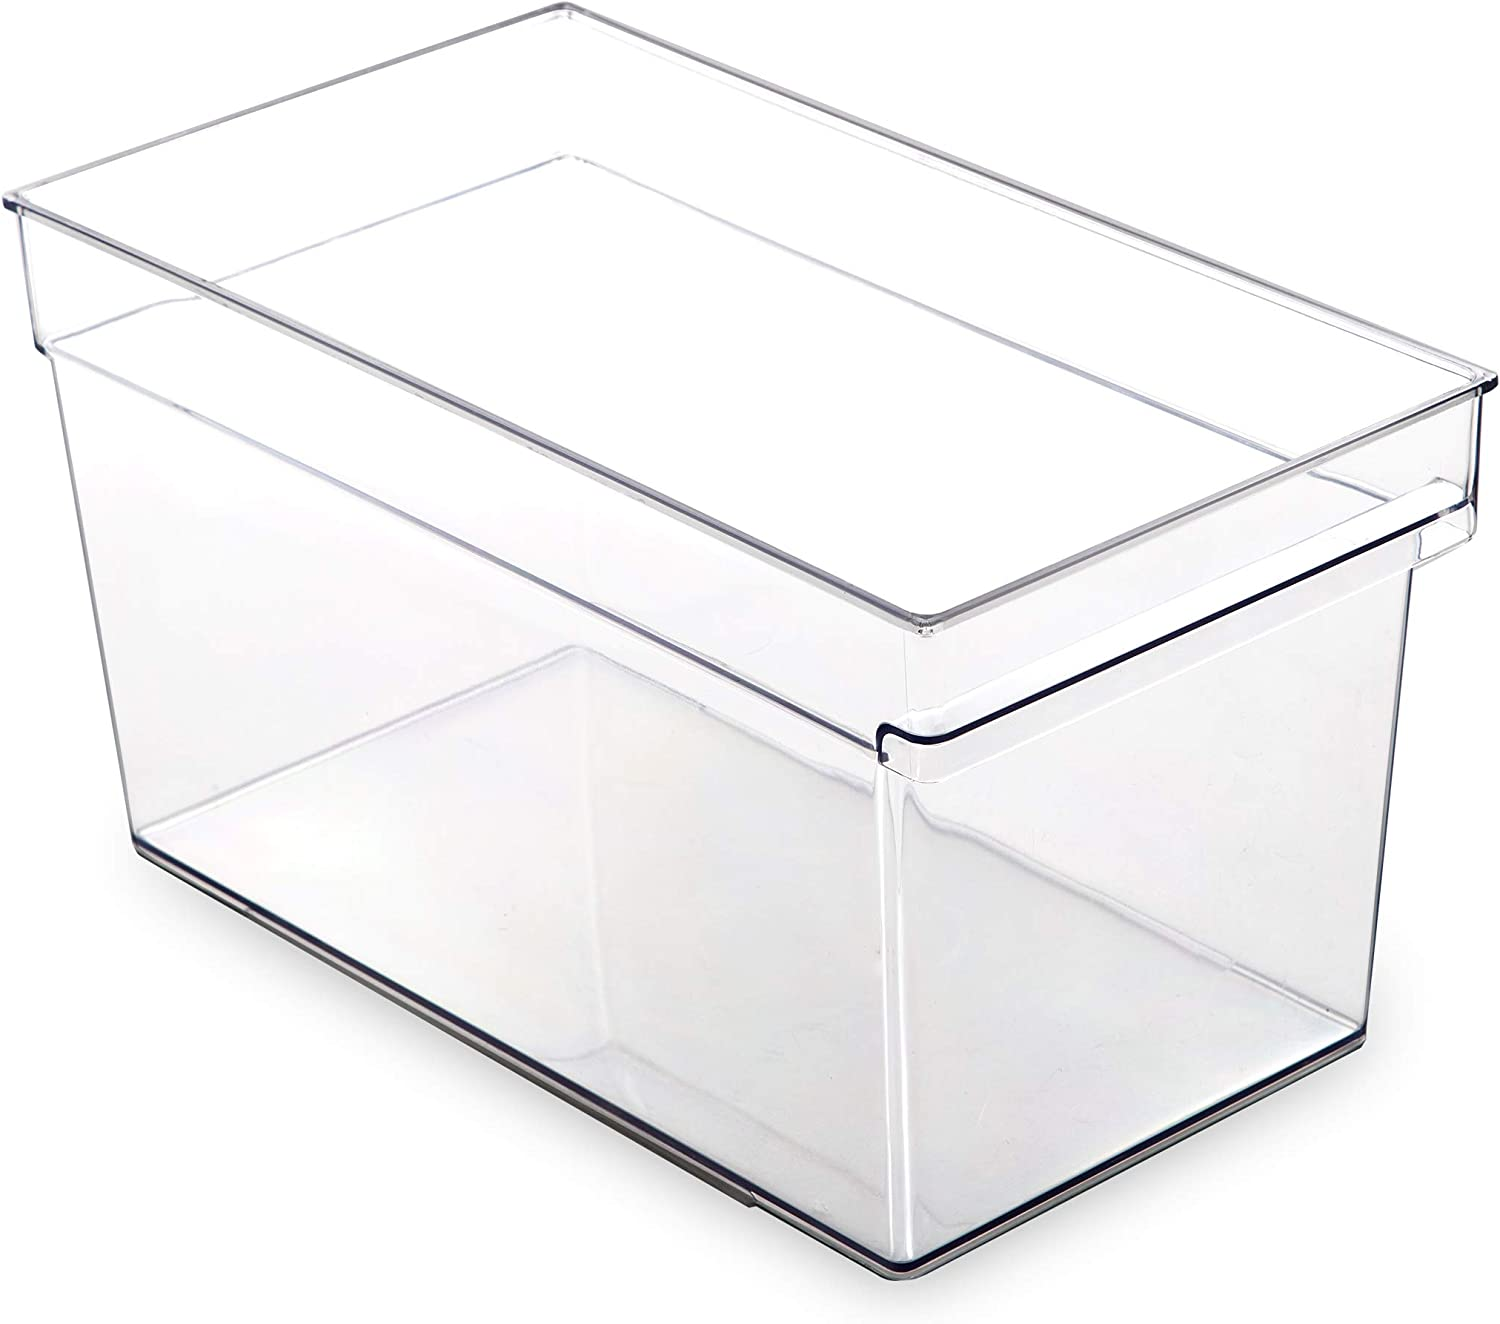 BINO Clear Plastic Storage Bin with Built-In Pull Out Handle - (Deep, Large) - Storage Bins for Home, Kitchen, and Bath - Refrigerator, Freezer, Cabinet, Closet, Pantry Organization and Storage